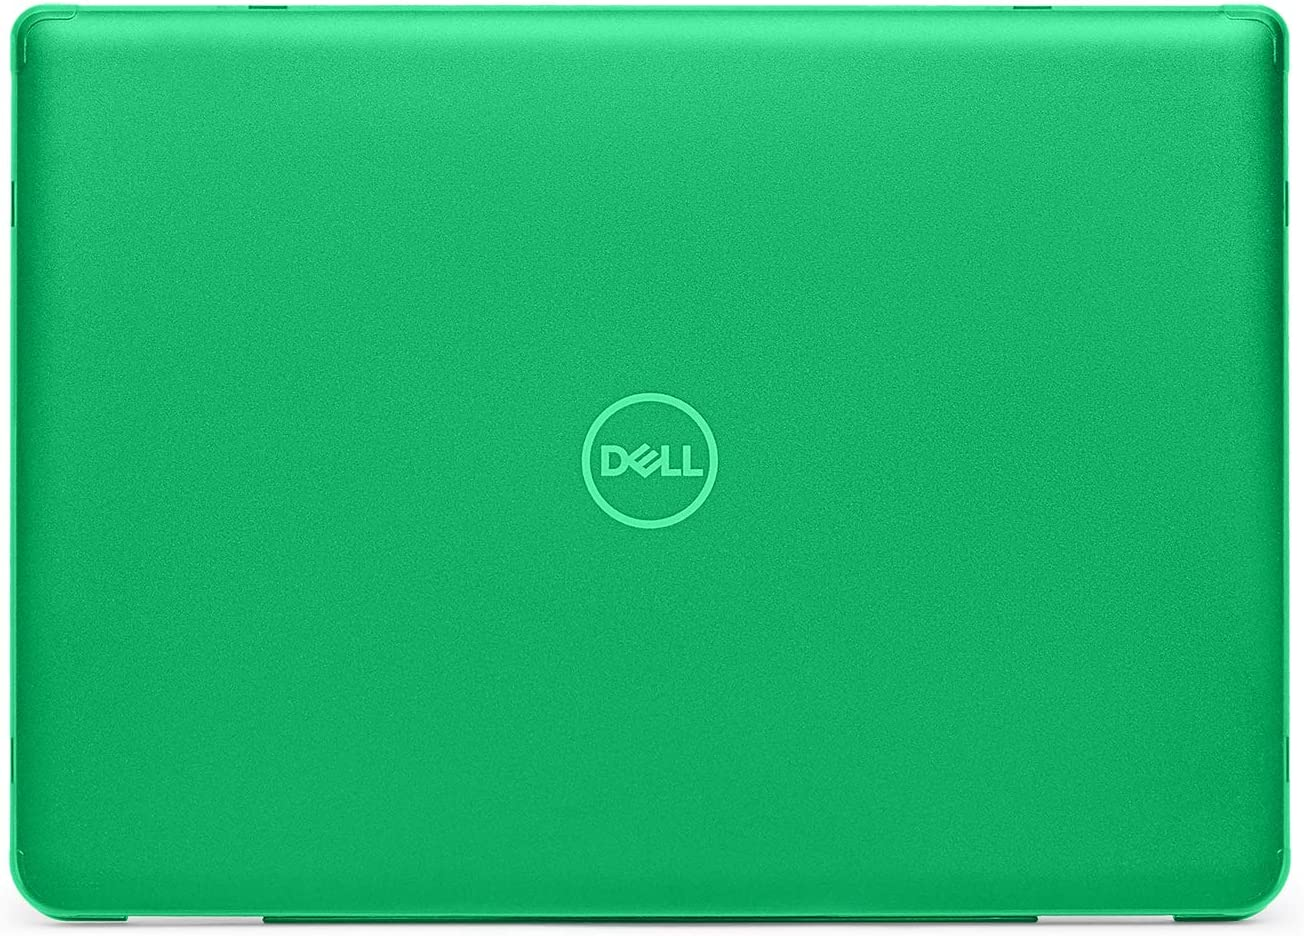 "mCover Hard Shell Case for 14"" Dell Latitude 3400 Business Laptop Computers Released After March 2019 (NOT Compatible with Other Dell Latitude Computers) (Green)"